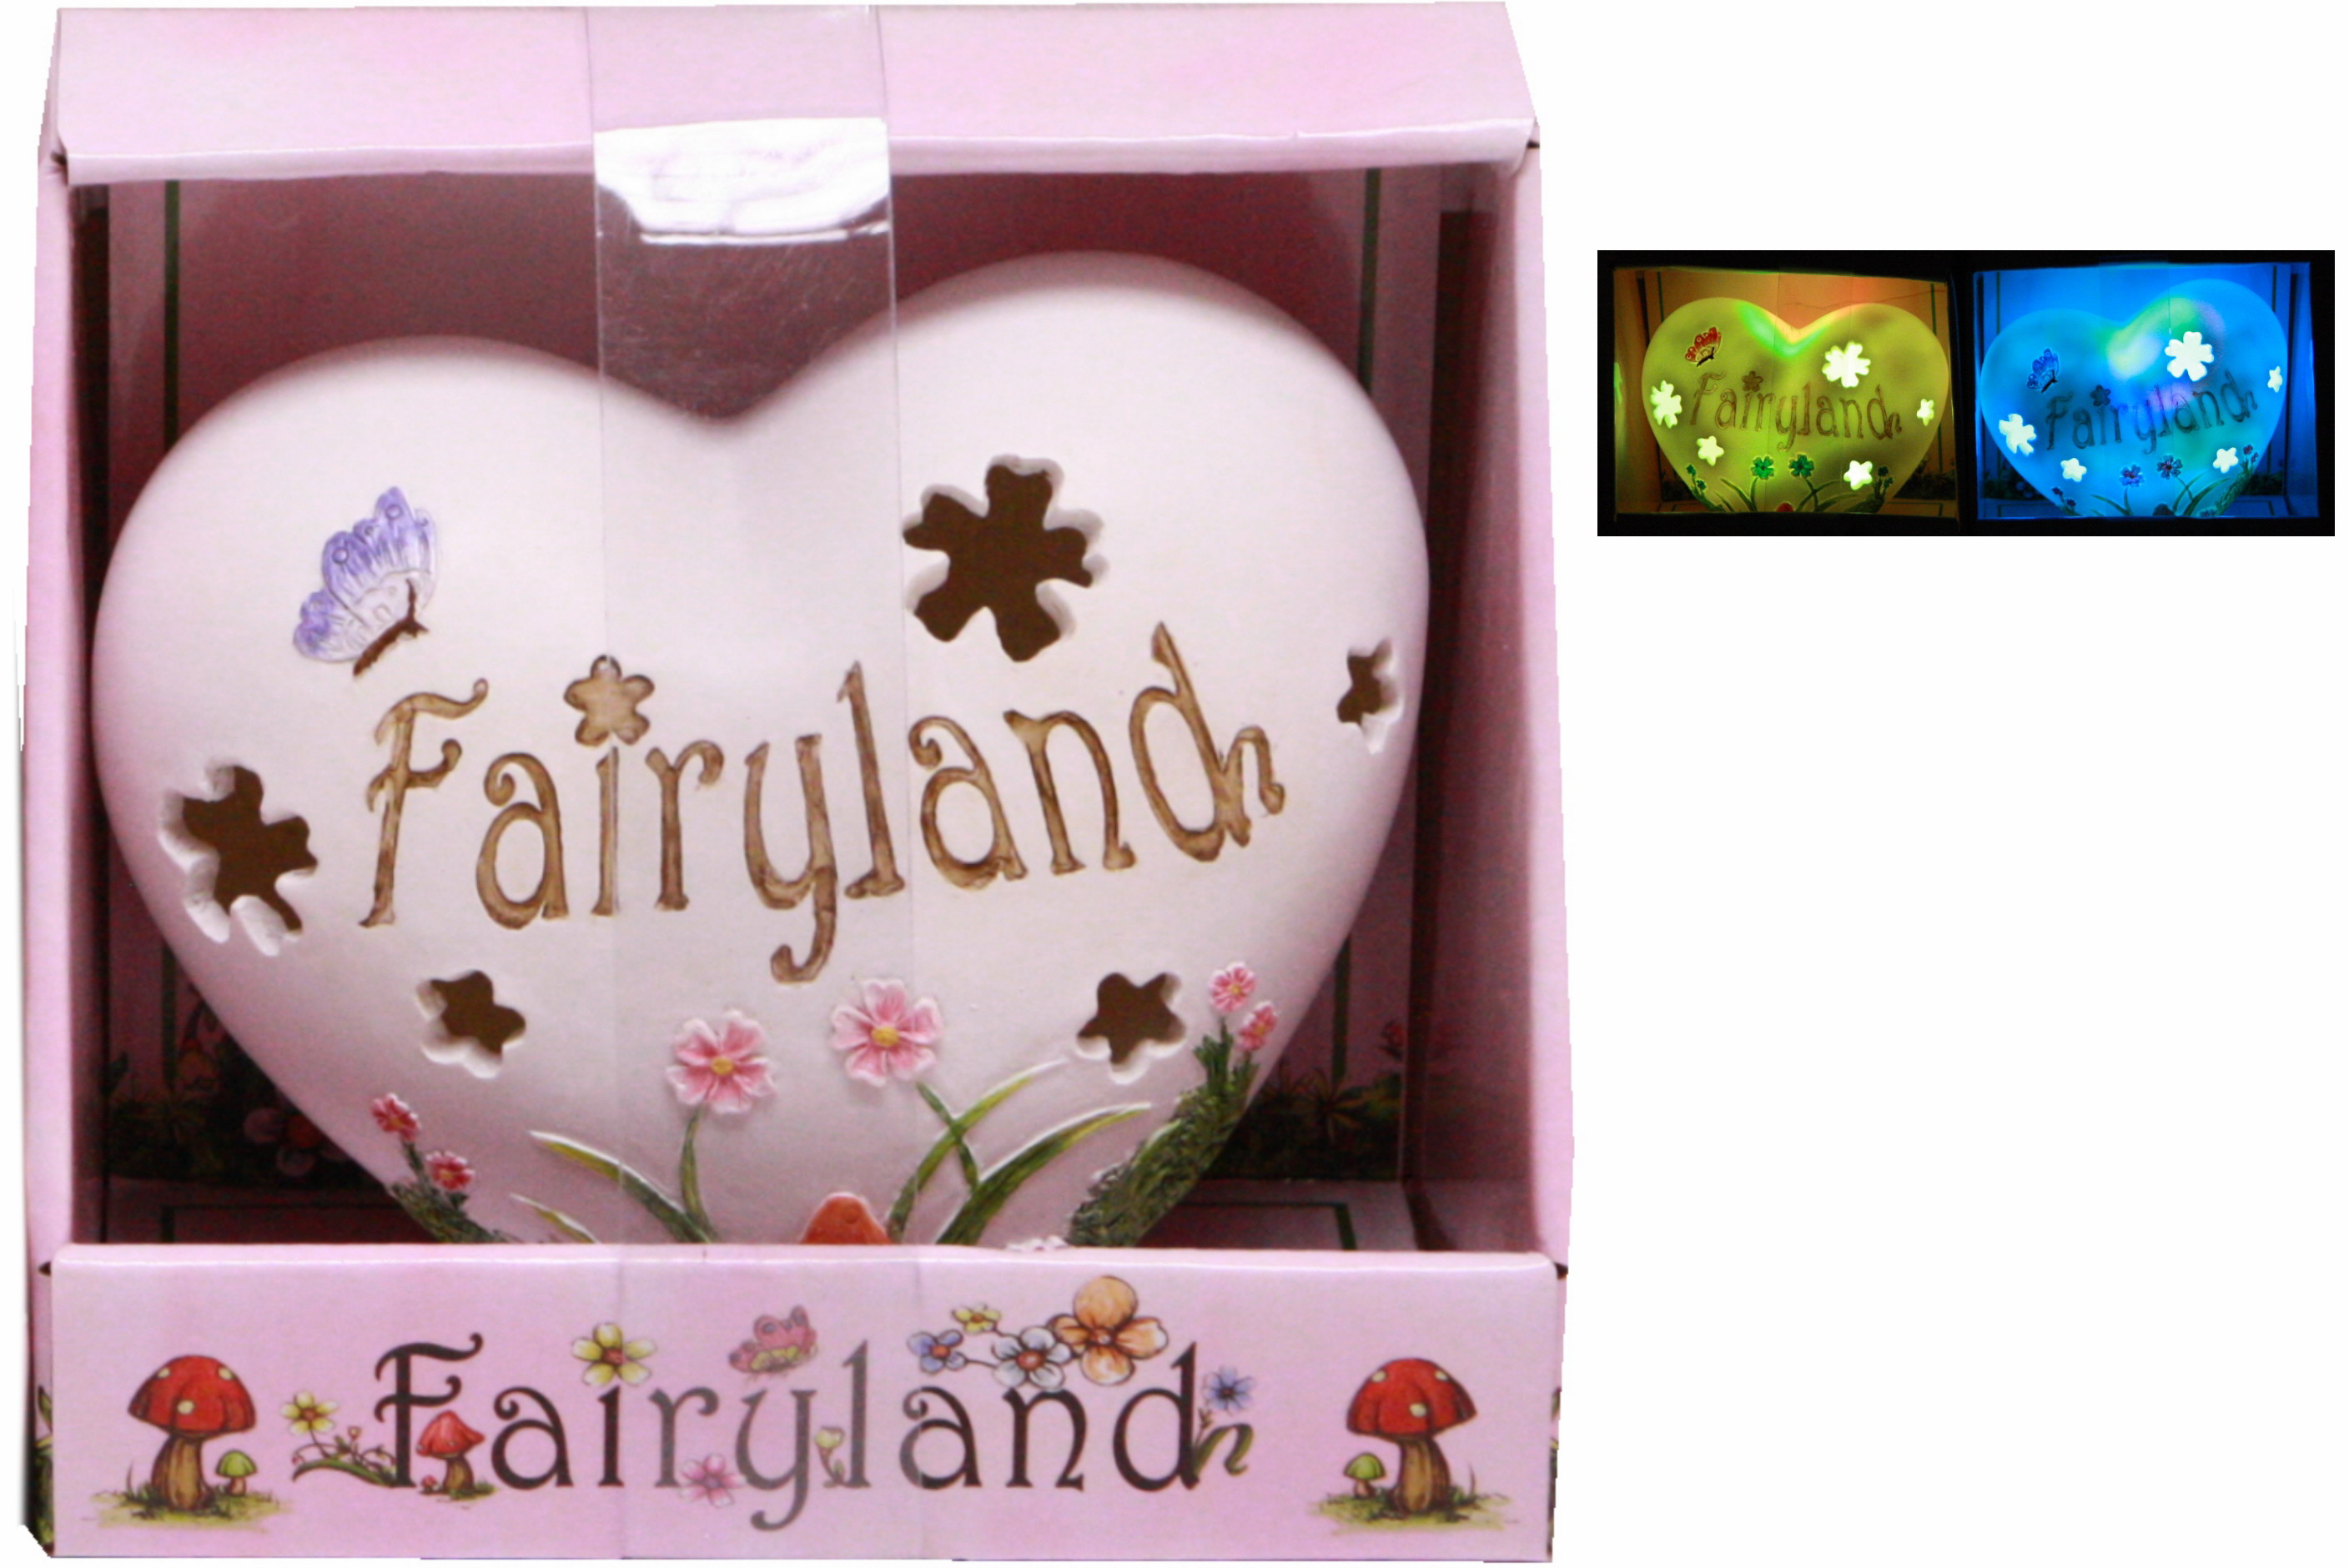 Fairyland Light Up Heart In Open Touch Box